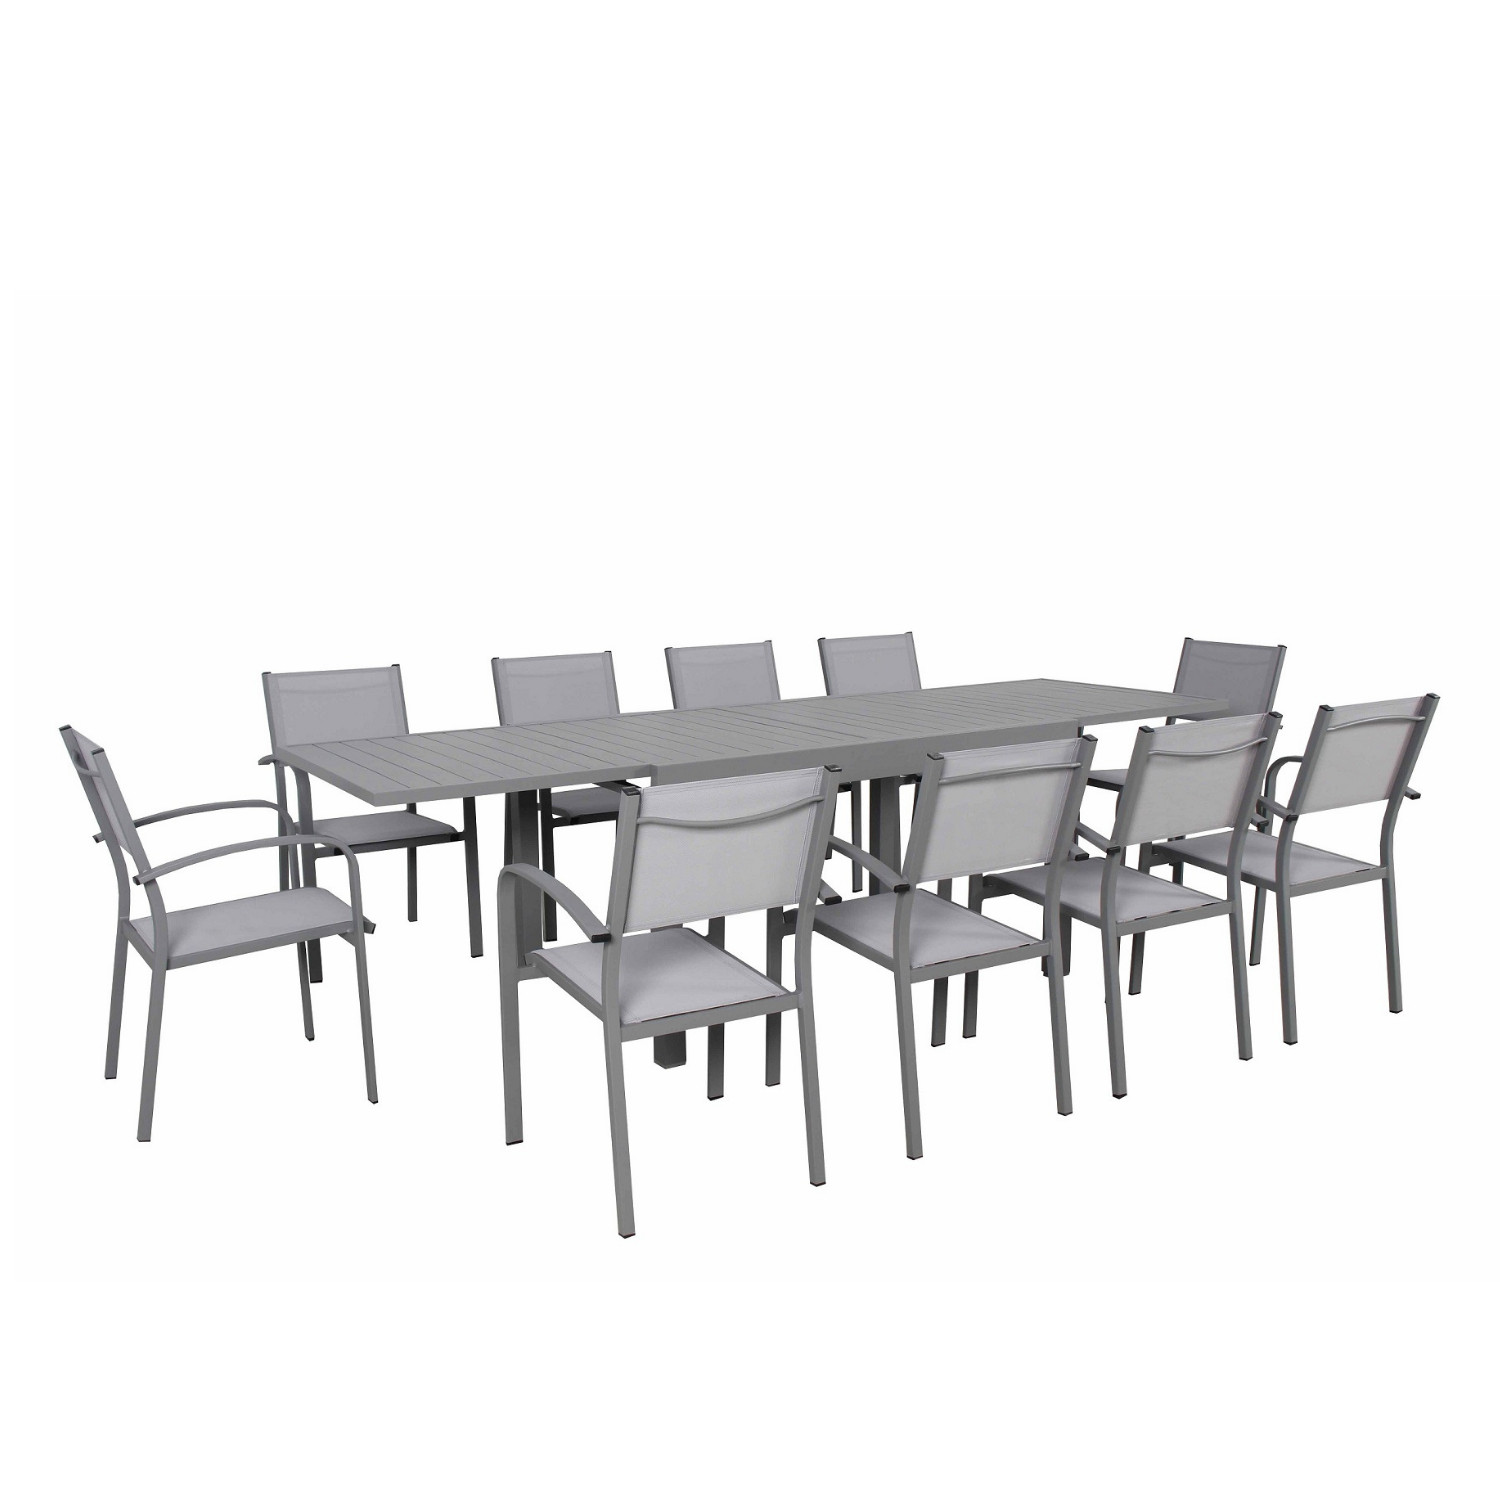 Ensemble de jardin 10 places extensible en aluminium gris